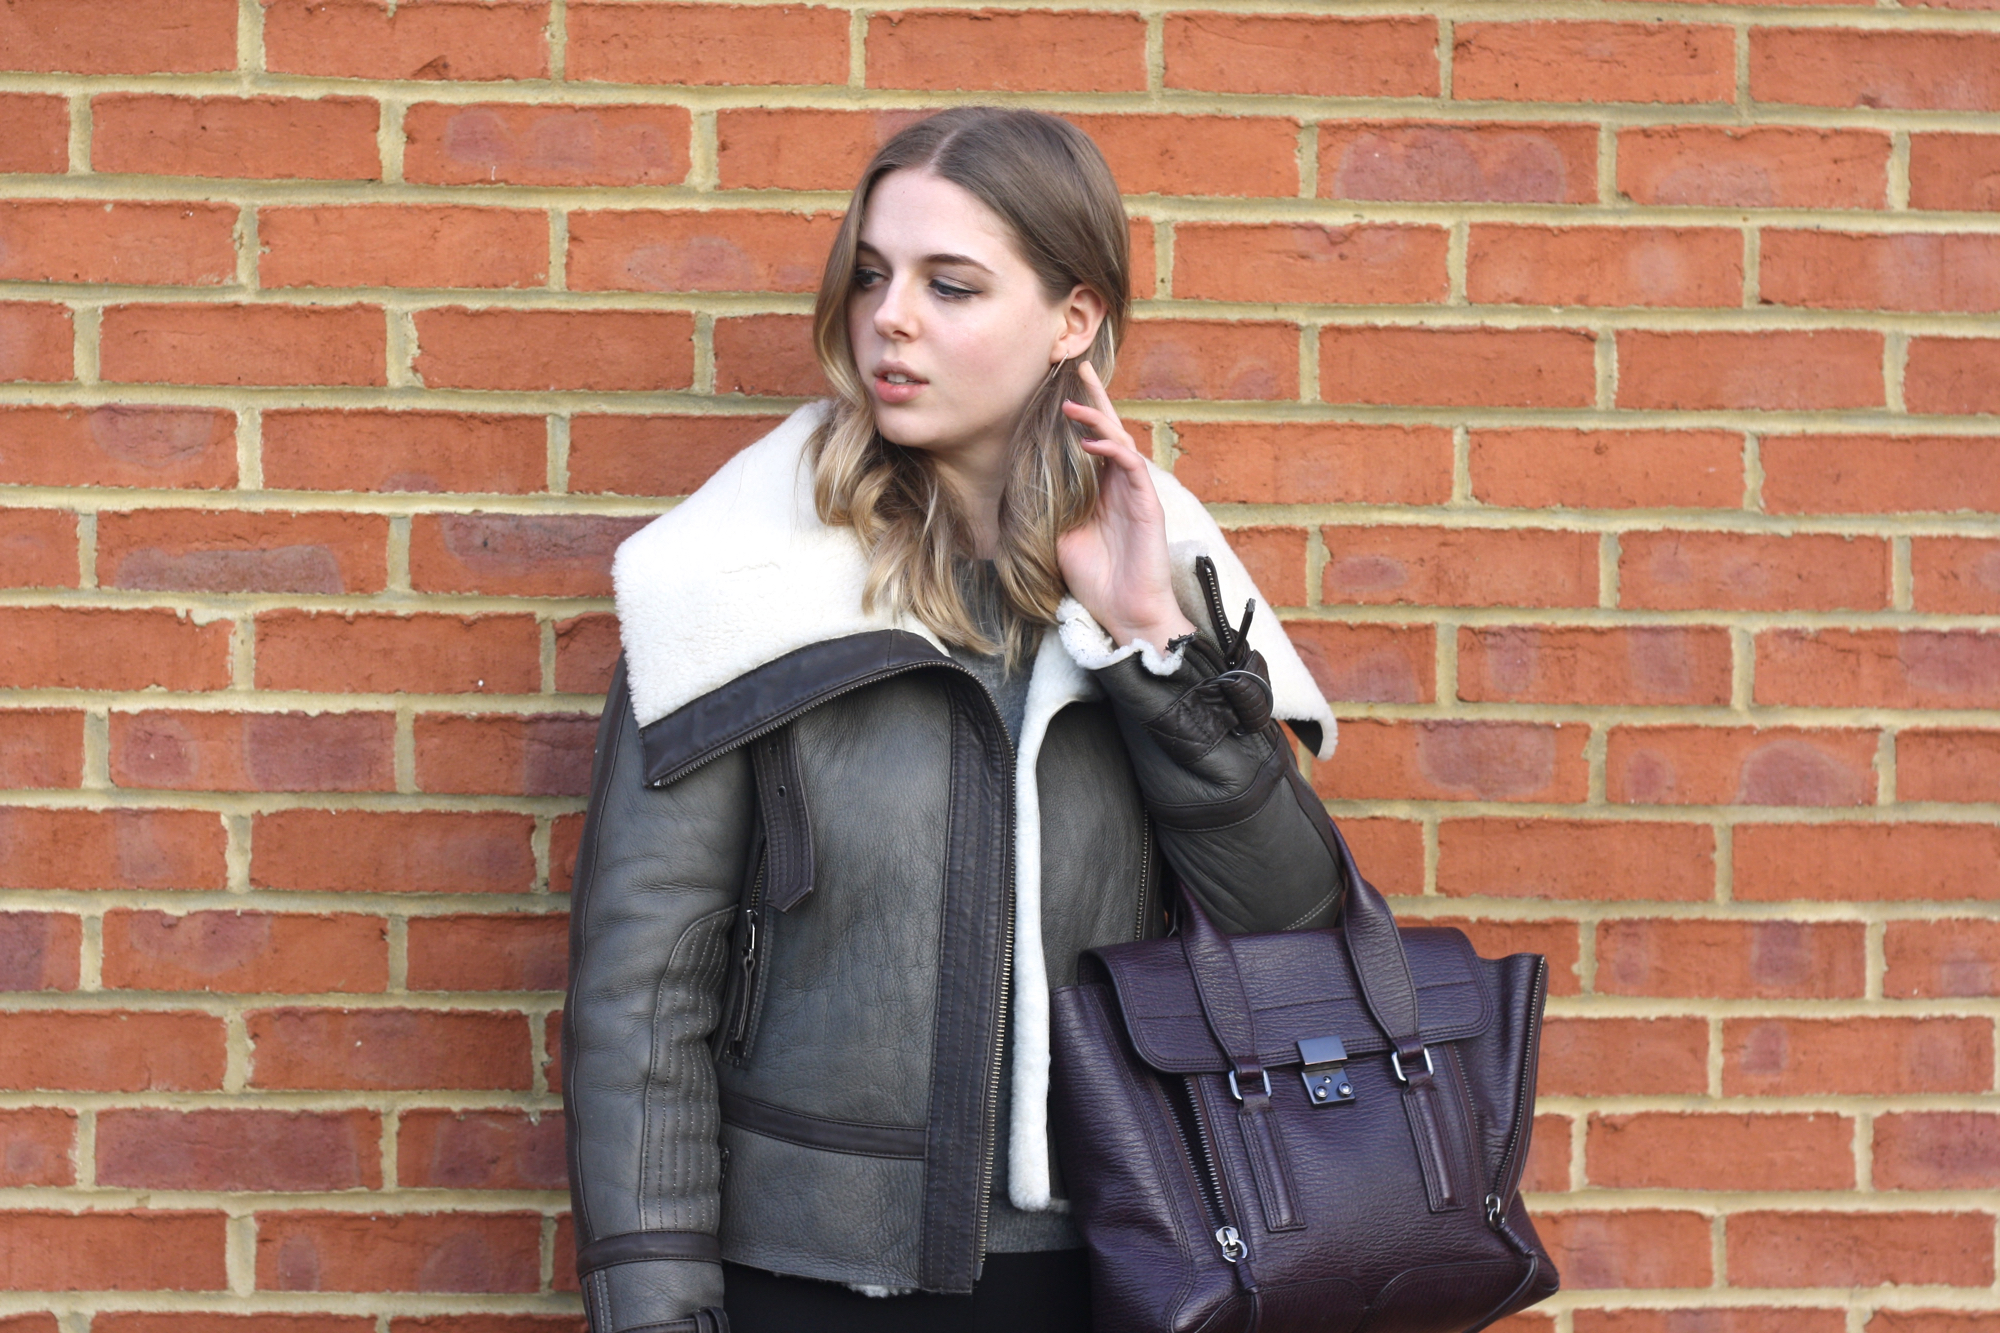 HM grey cashmere jumper, Topshop shearling jacket and 3.1 Phillip Lim medium Pashli